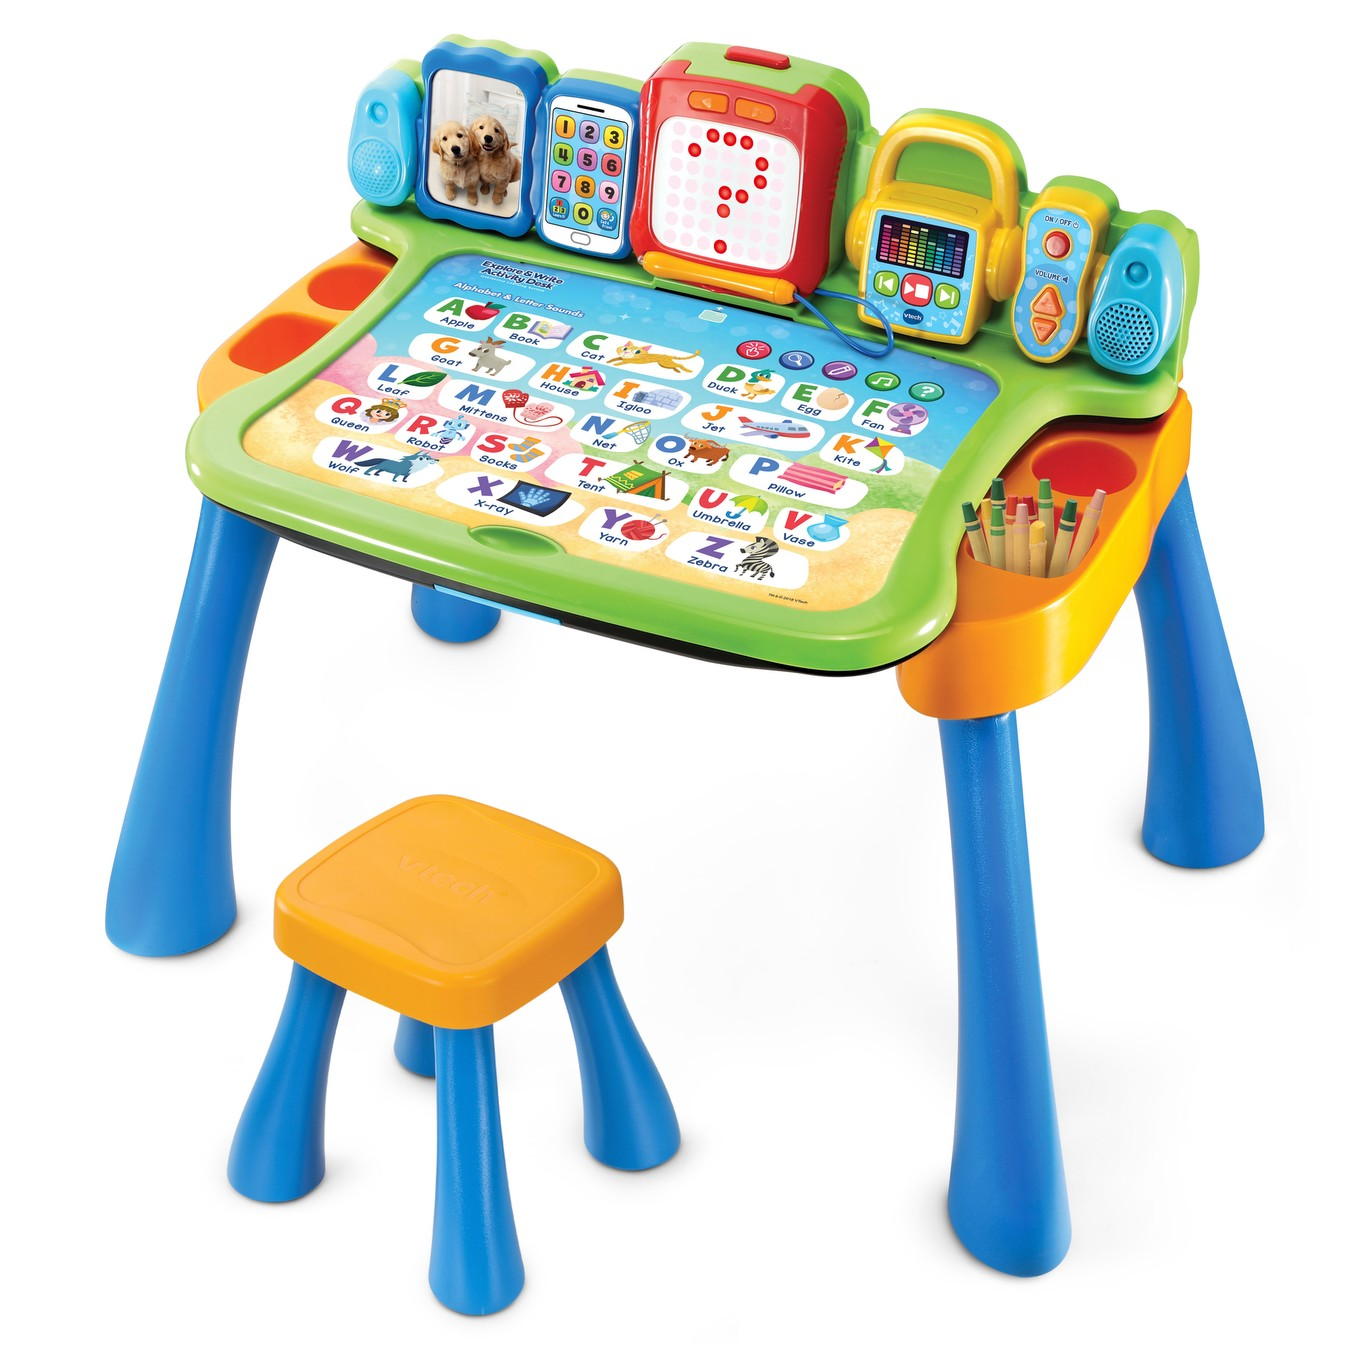 VTech Touch and Learn Activity Desk│Kid/'s Smart Educating Pad│LED Display│2-5Yrs